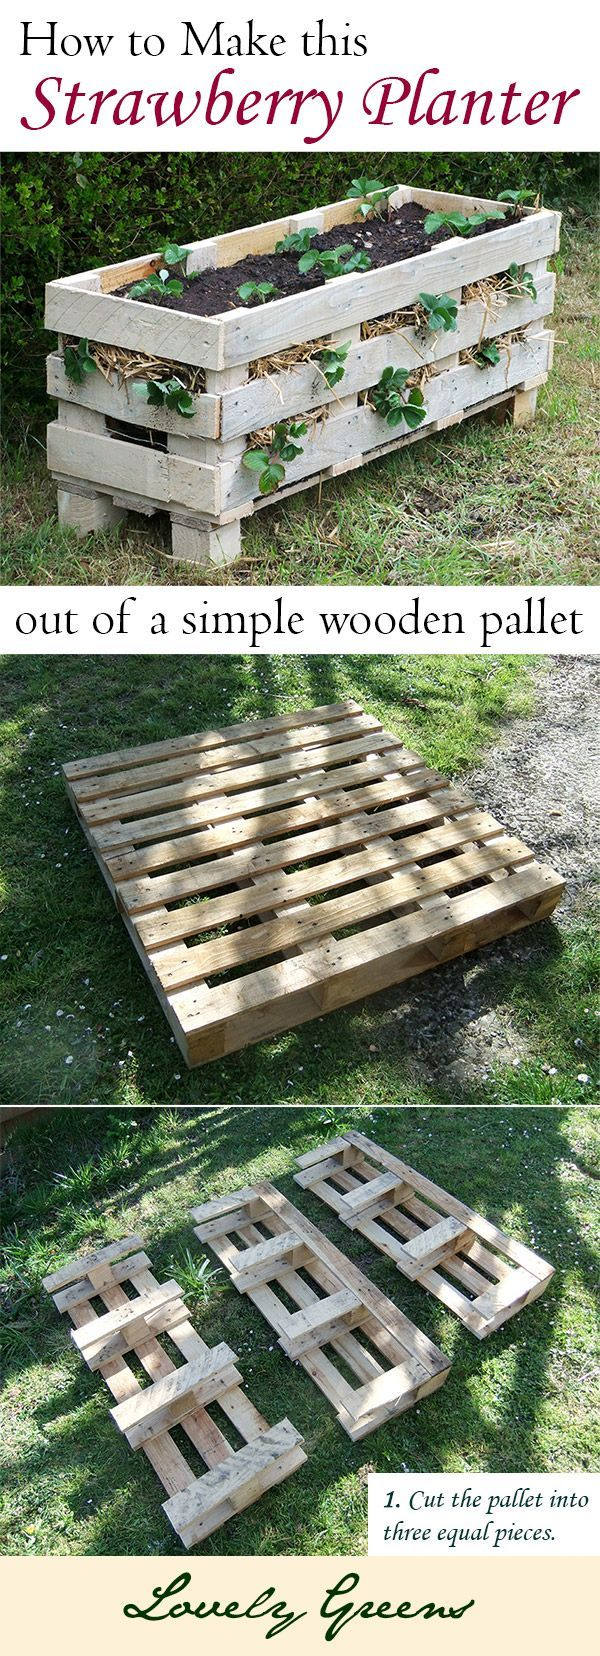 Growing strawberries in gutters diy idea - How To Make This Lovely And Practical Strawberry Planter Out Of A Single Pallet The